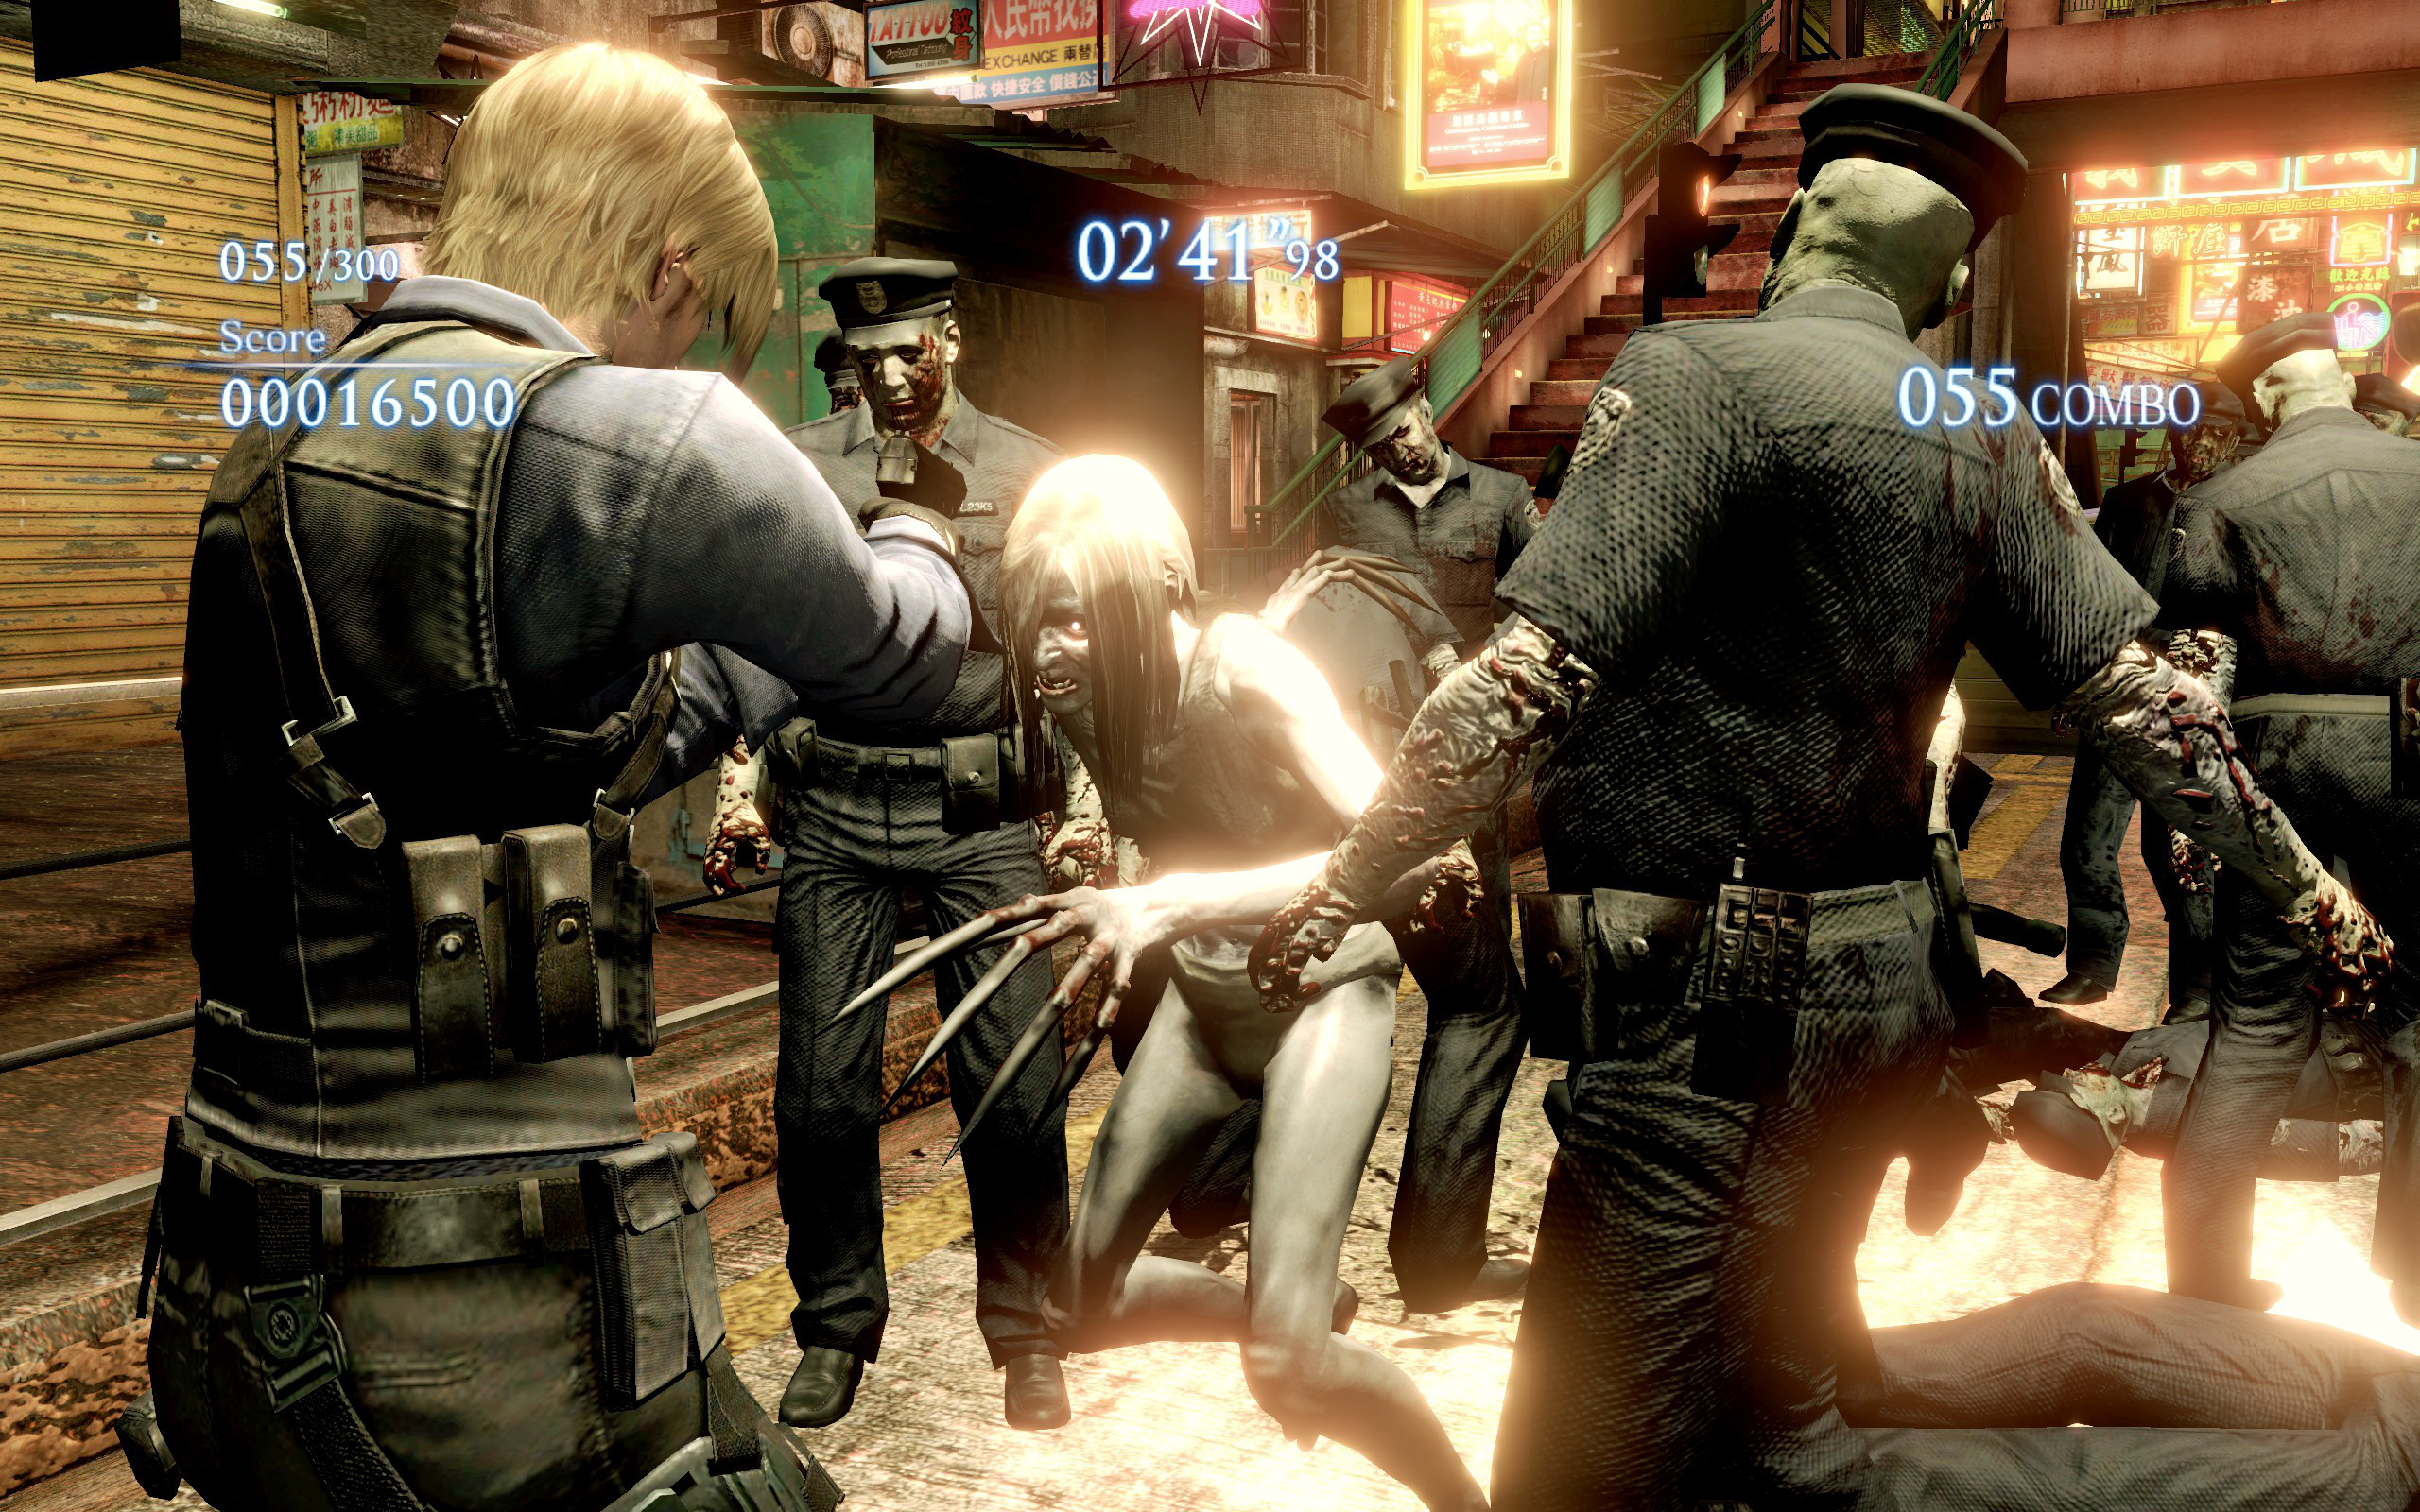 Play As Left 4 Dead 2 Characters in Resident Evil 6 - The Koalition